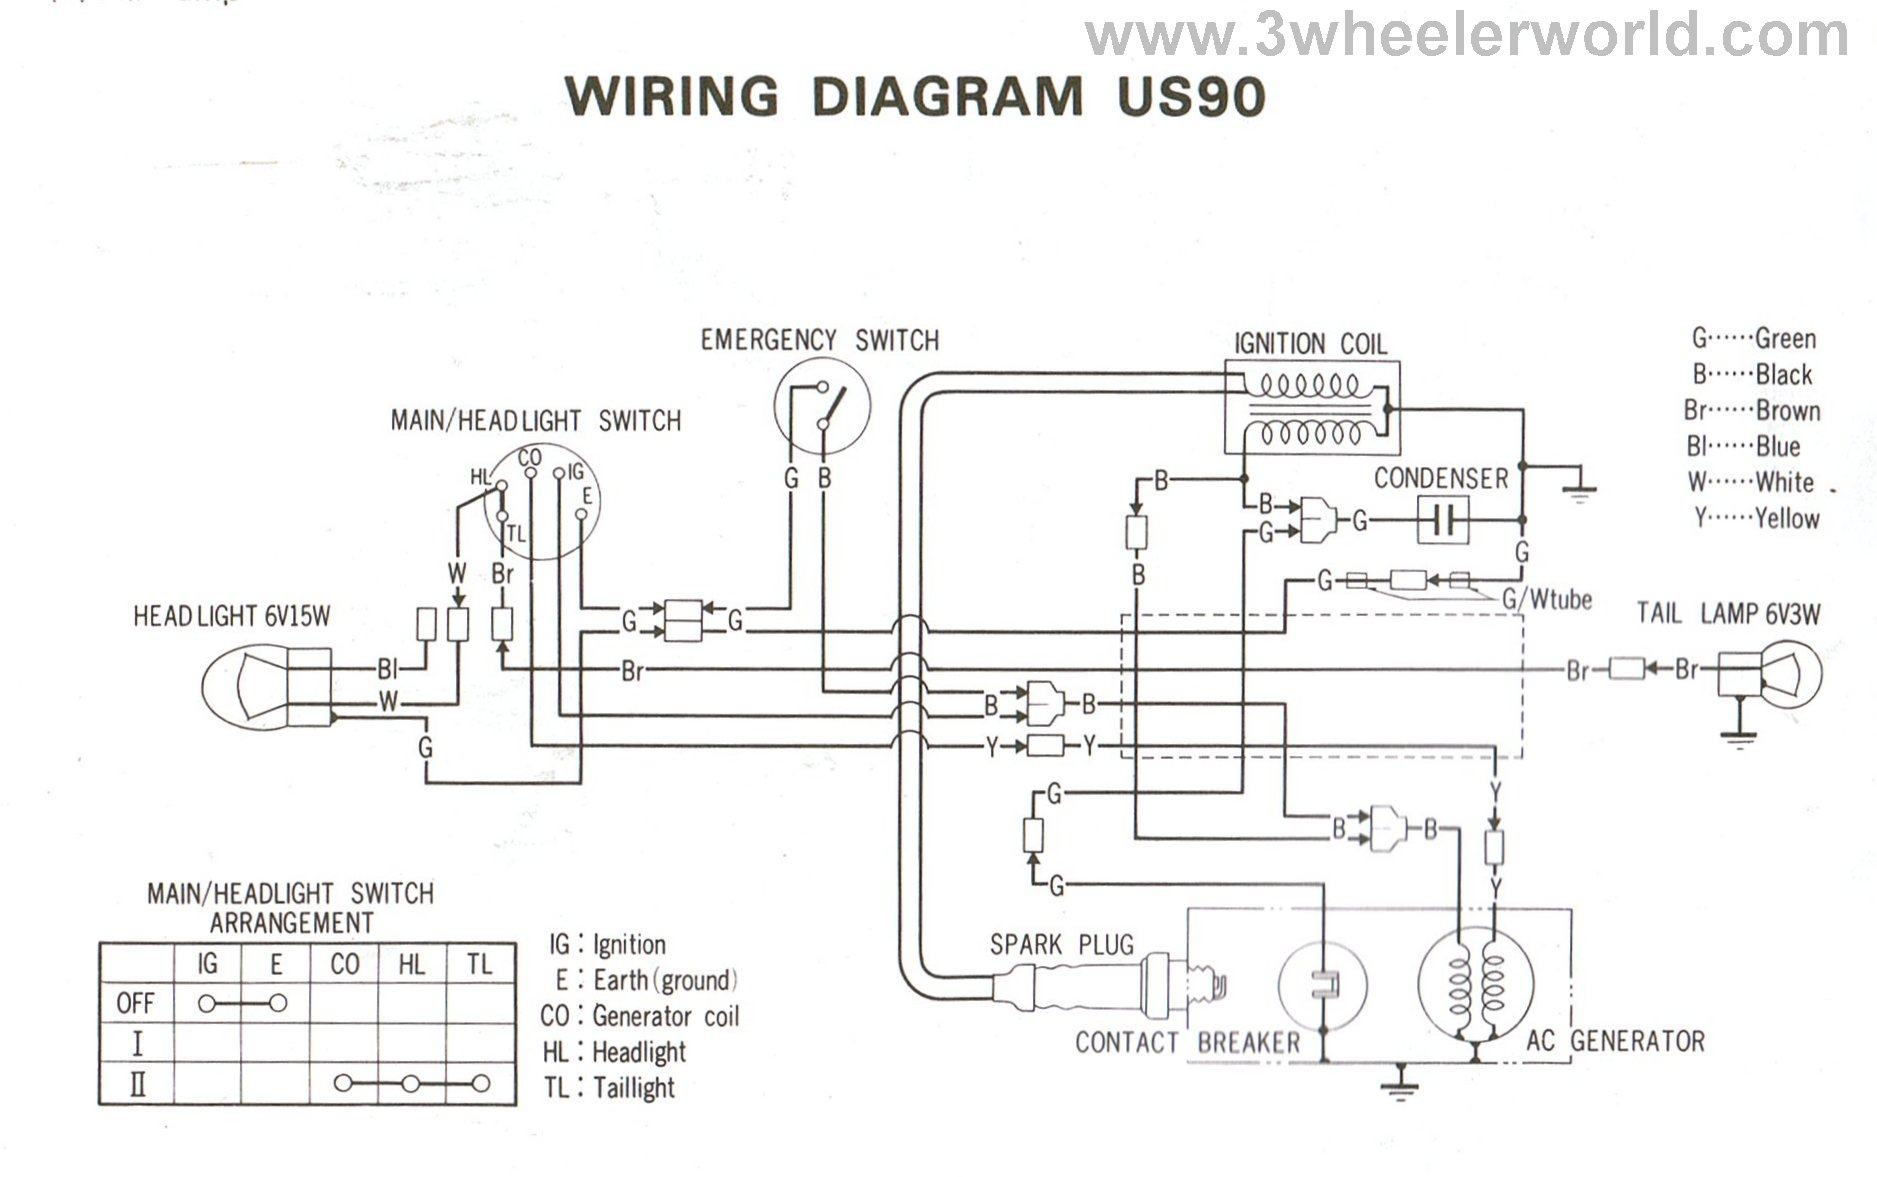 US90HM 3 wheeler world tech help honda wiring diagrams atc 300 wiring diagram at edmiracle.co